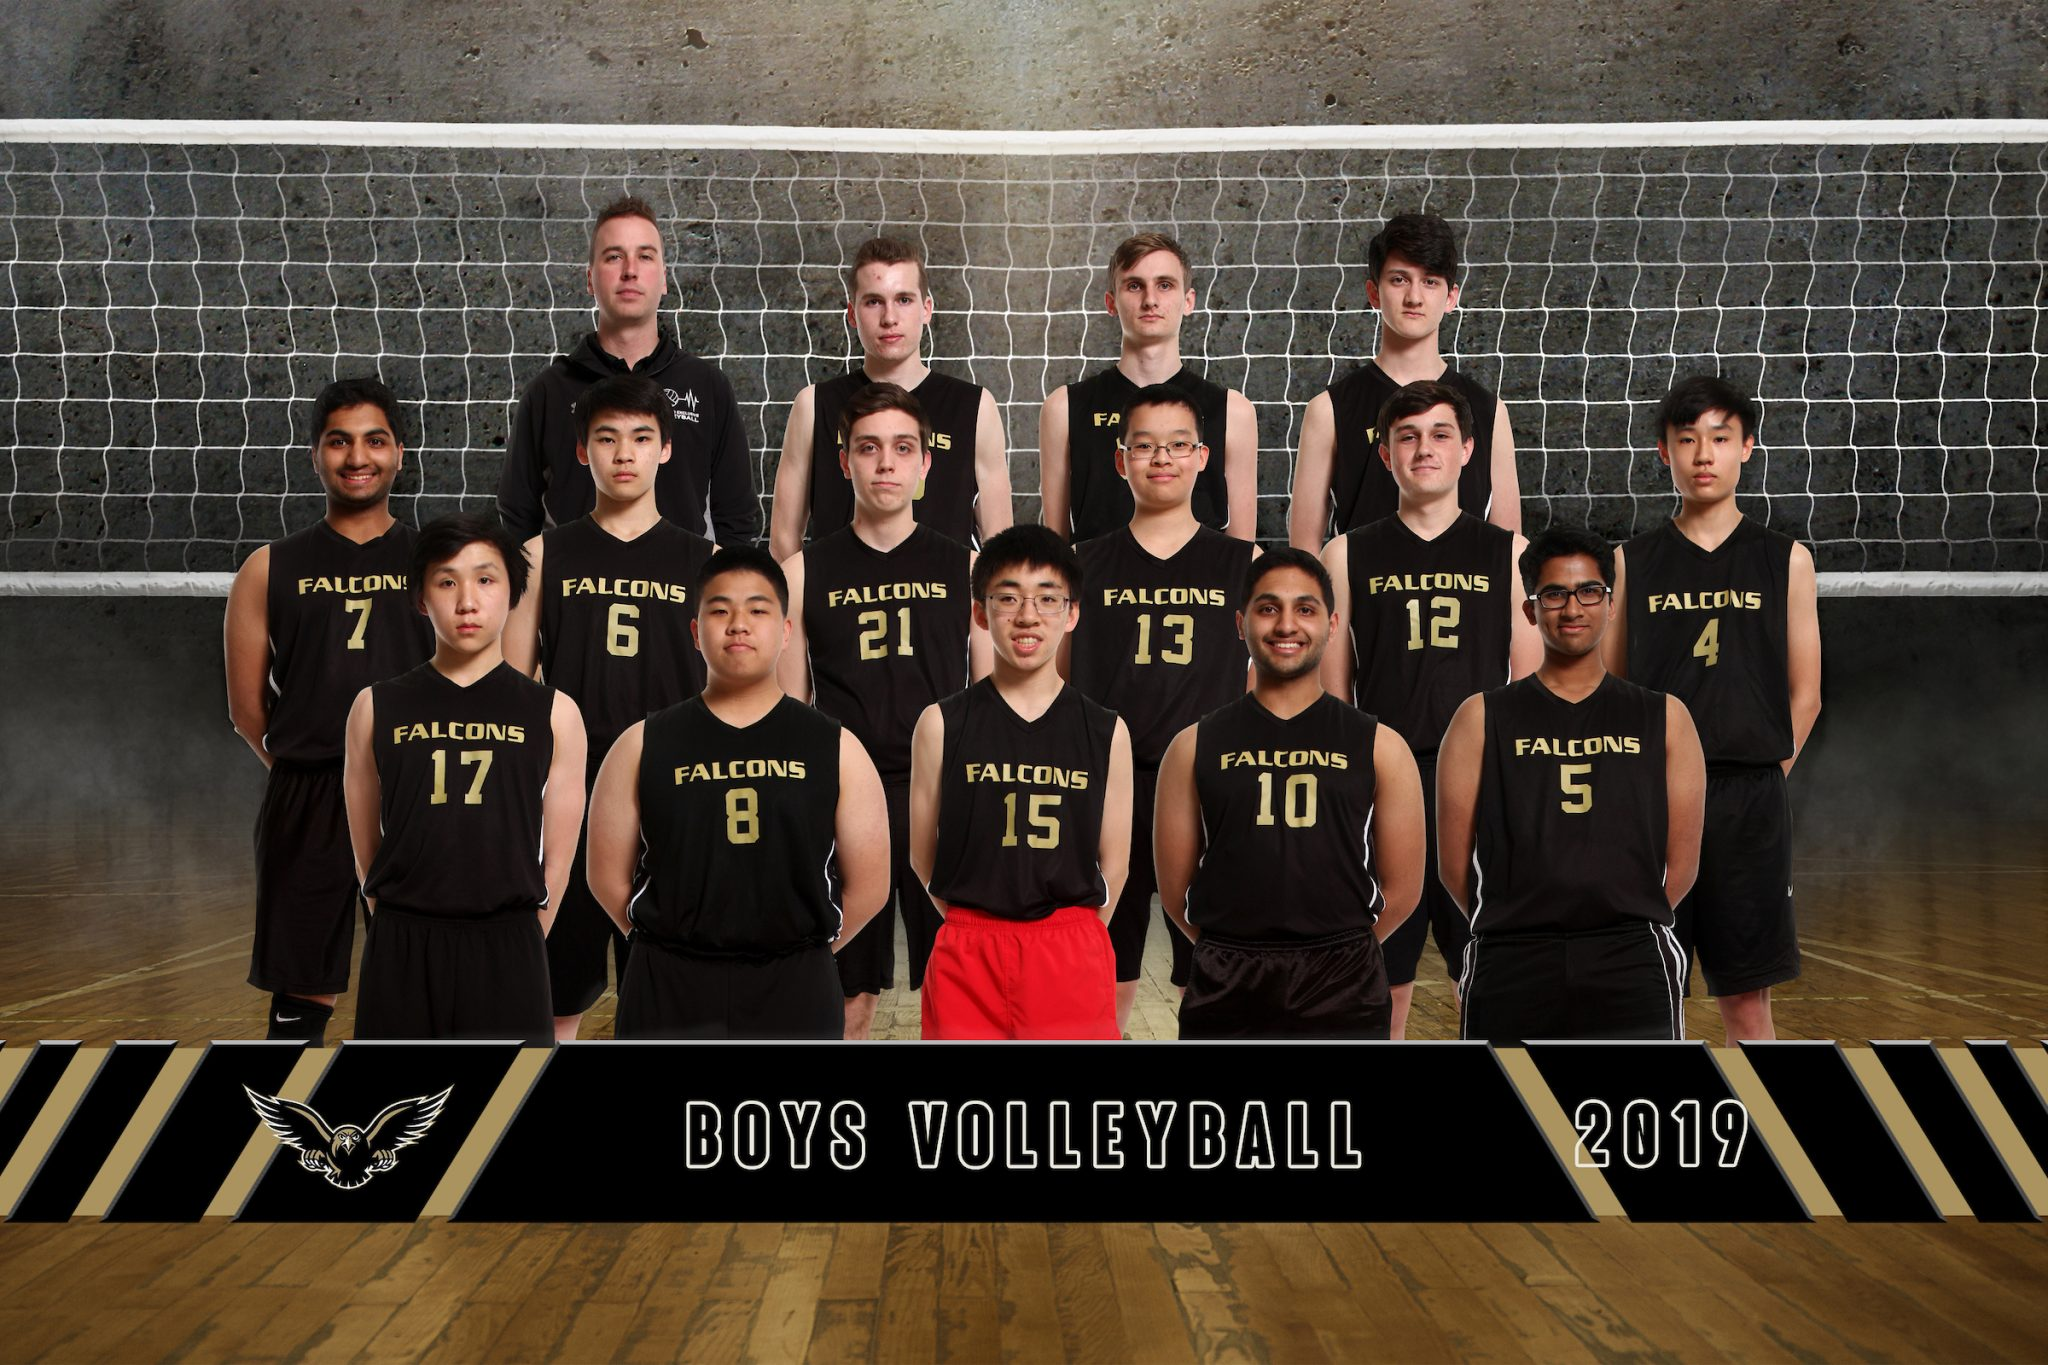 boys volleyball team picture